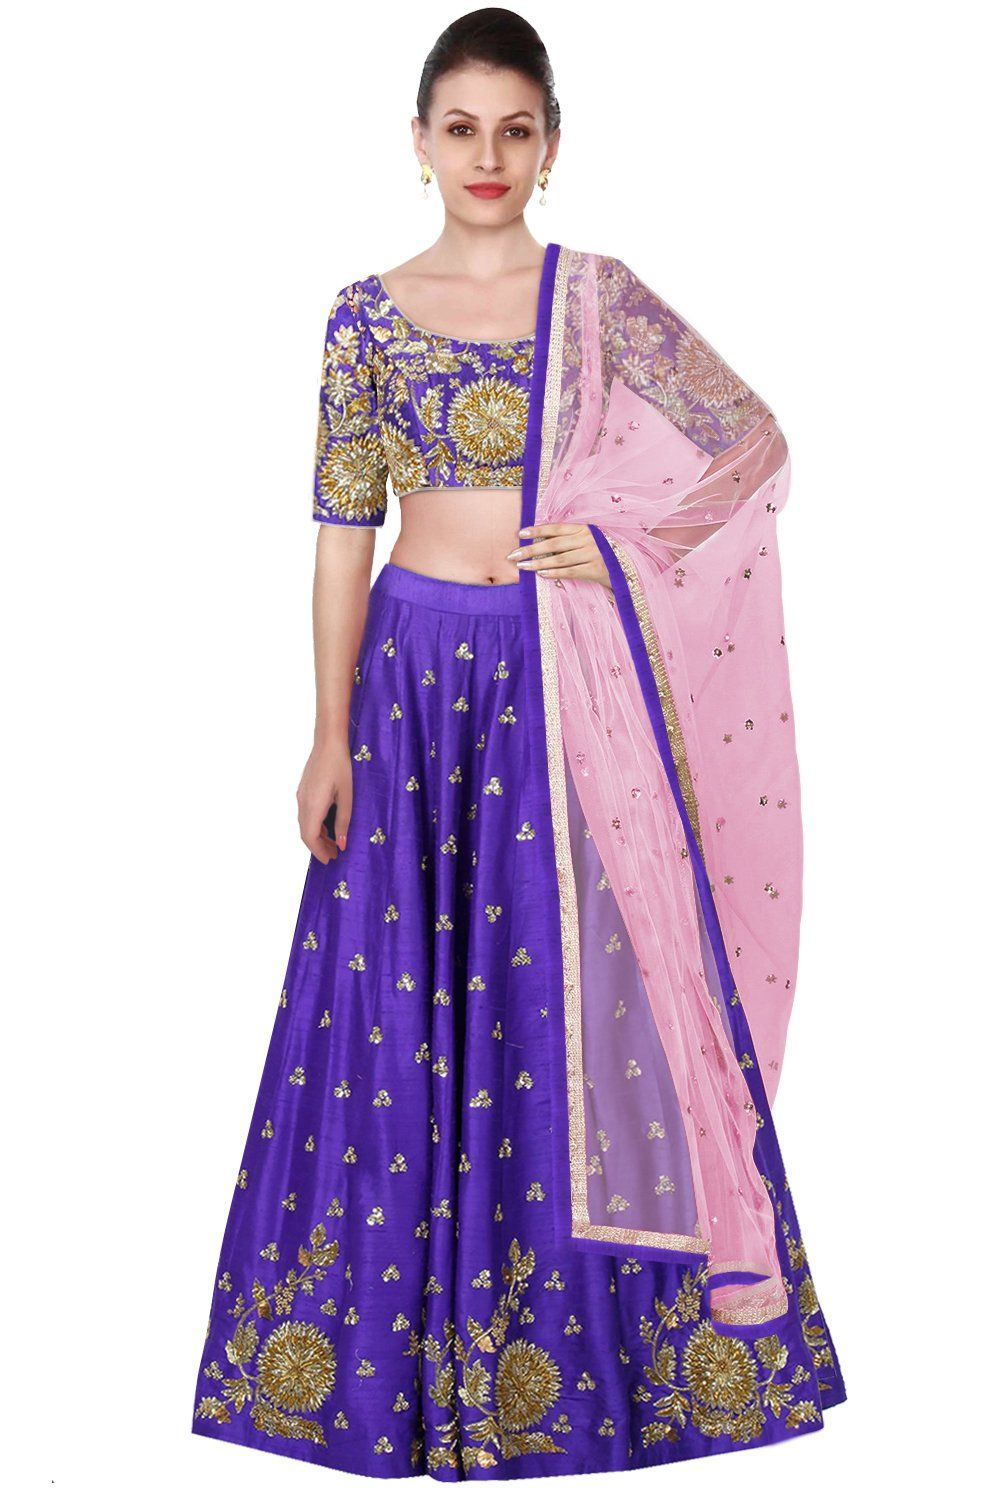 7adde92007 Purple Color Lehenga Choli with Pink Dupatta in 2019 | Indian ...